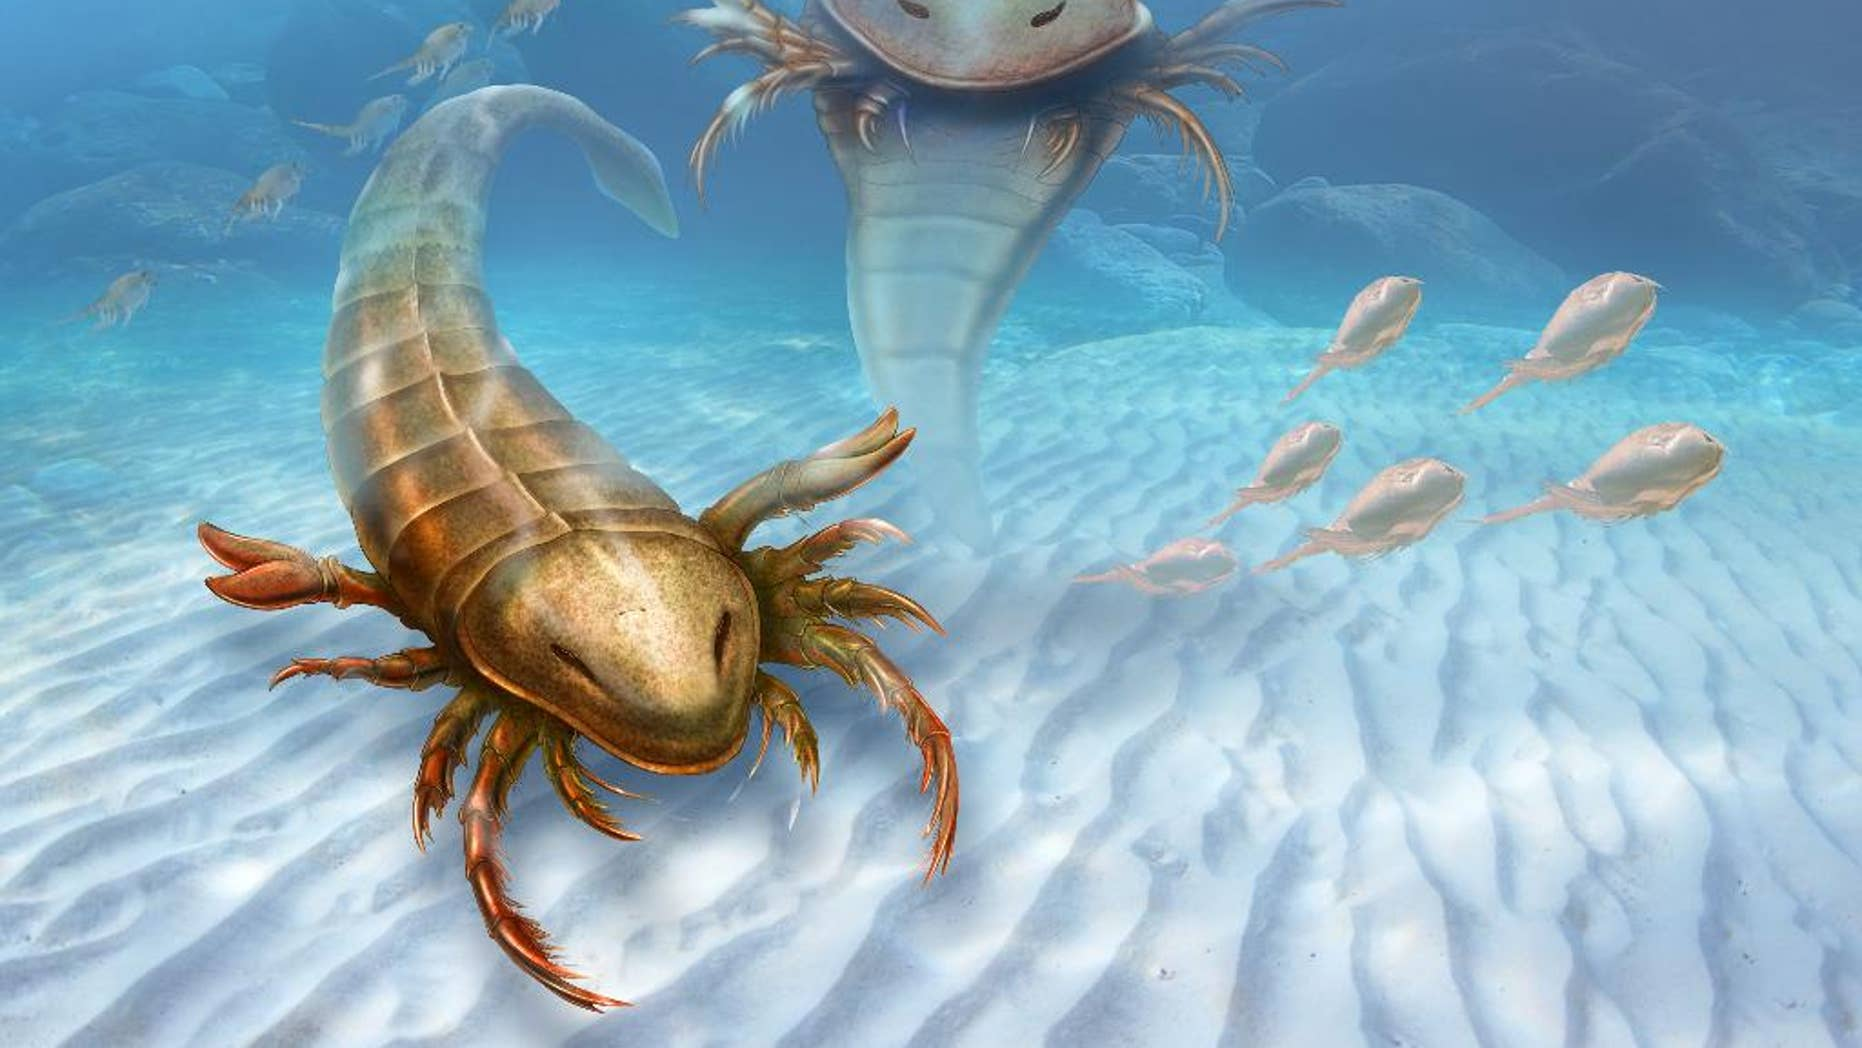 This rendering provided by Yale University shows a Pentecopterus decorahensis. Earth's first big predatory monster was a weird water bug, newly found fossils show. Almost half a billion years ago, Earth's dominant large predator was a sea scorpion that grew to 5 feet 7 inches with a dozen claw arms sprouting from its head and a spike tail, according to a new study. (Patrick J. Lynch/Yale University via AP)